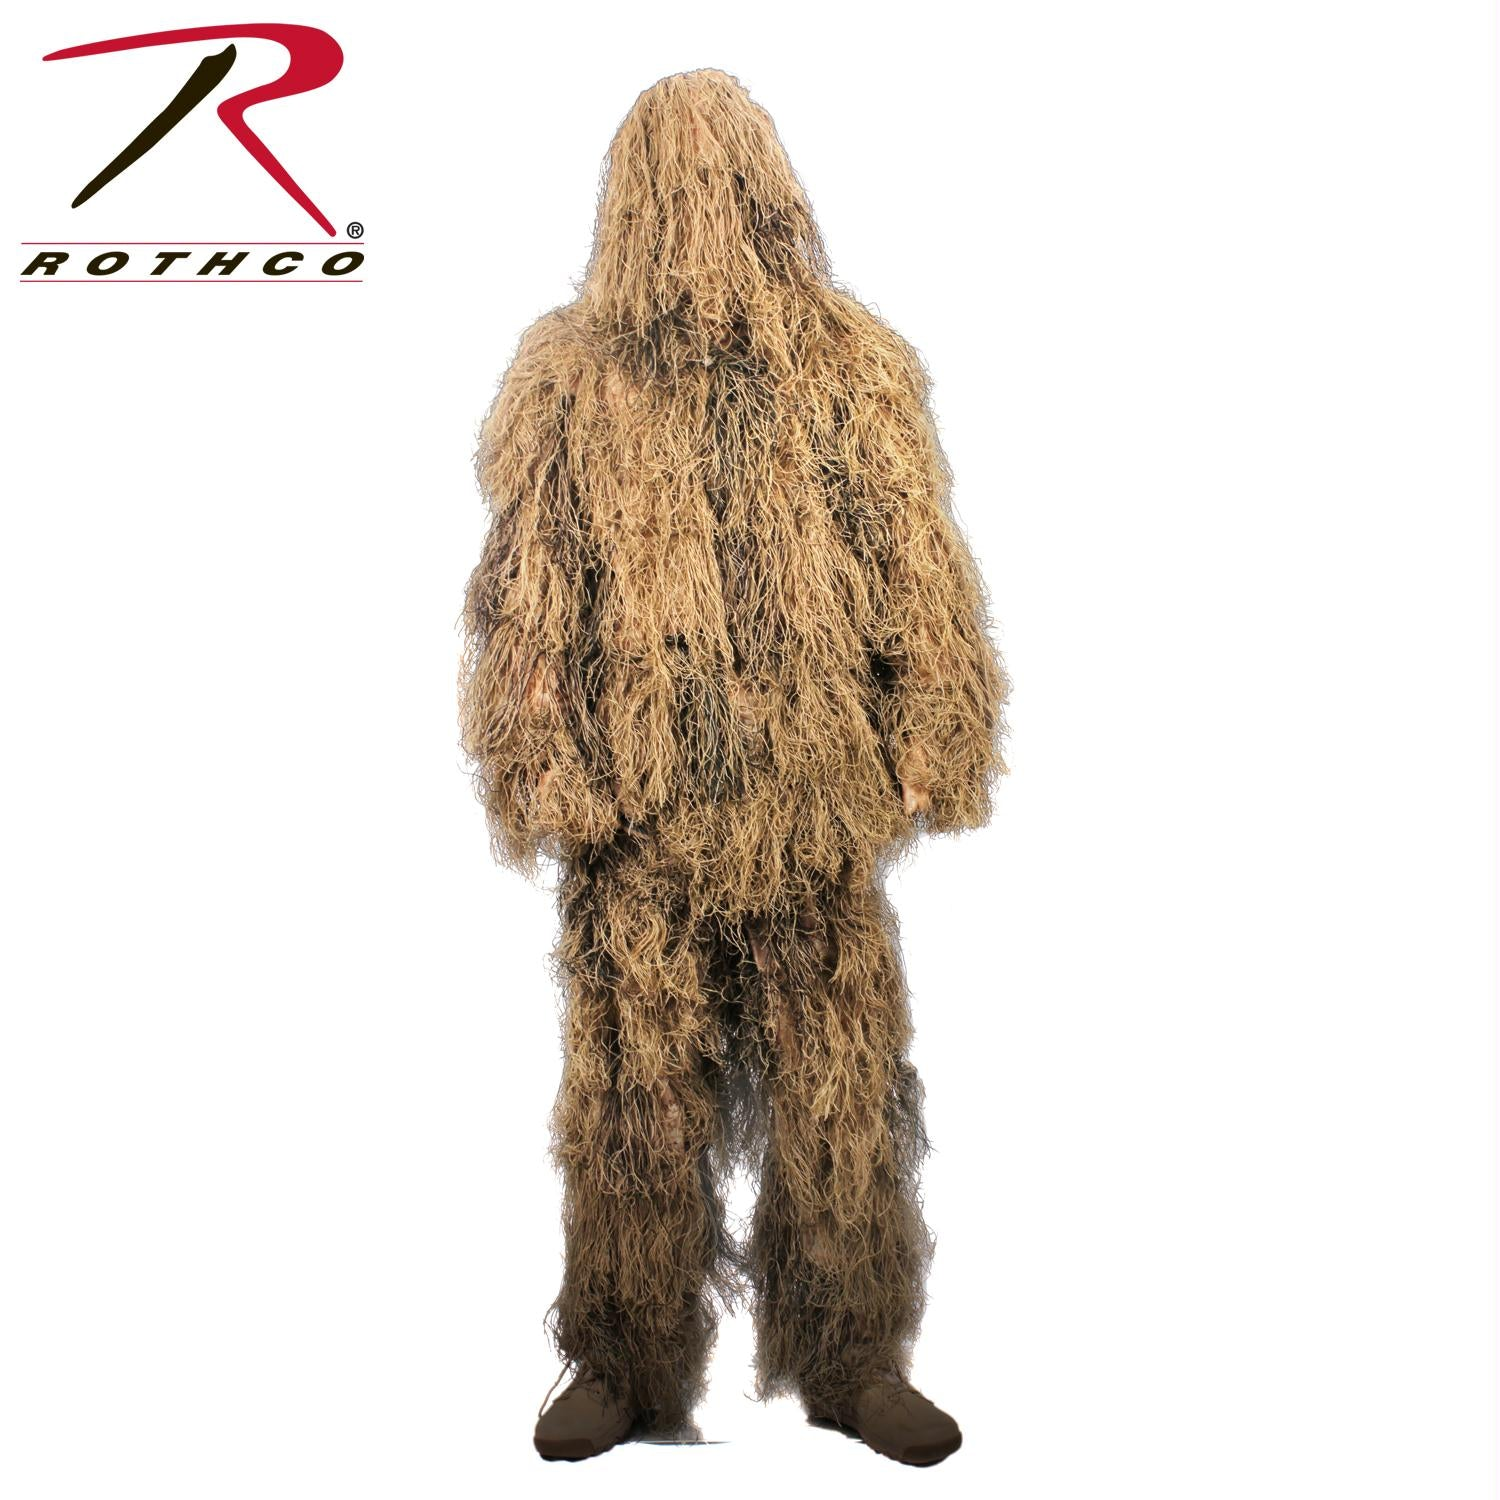 Rothco Lightweight All Purpose Ghillie Suit - Desert Tan / XL / 2XL